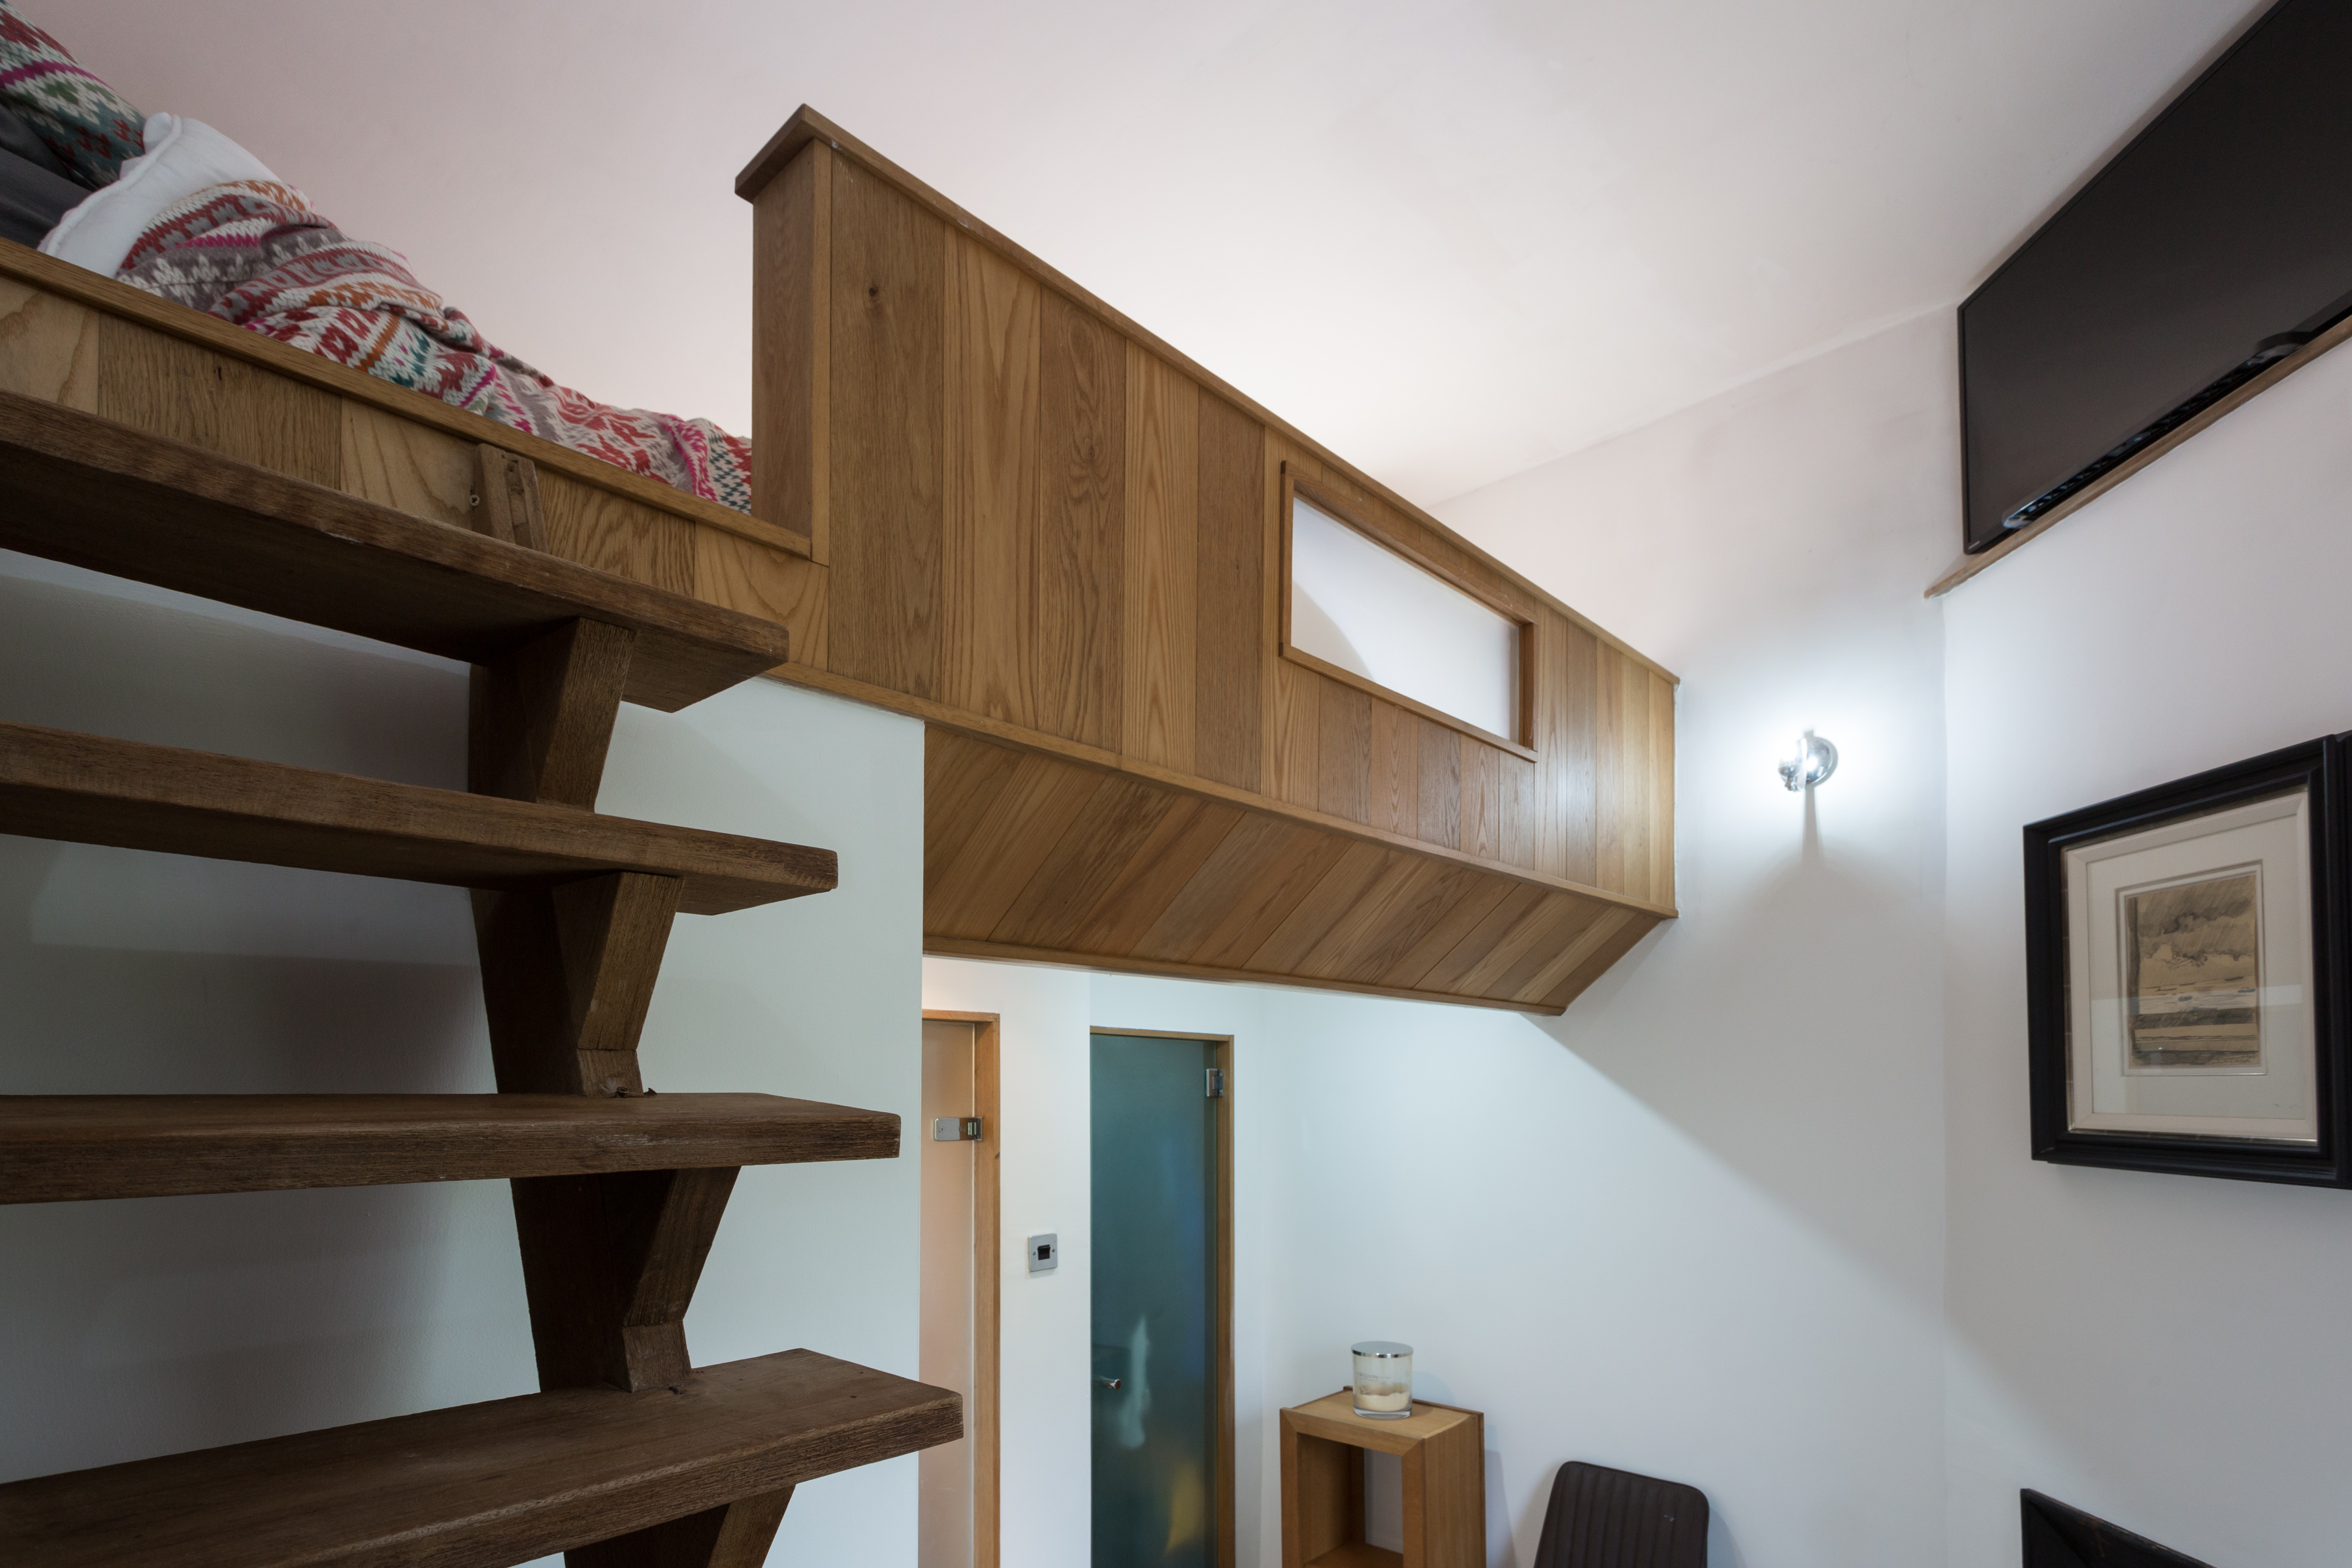 A bed can be seen up the stairs - with the home perfect for a single person or couple